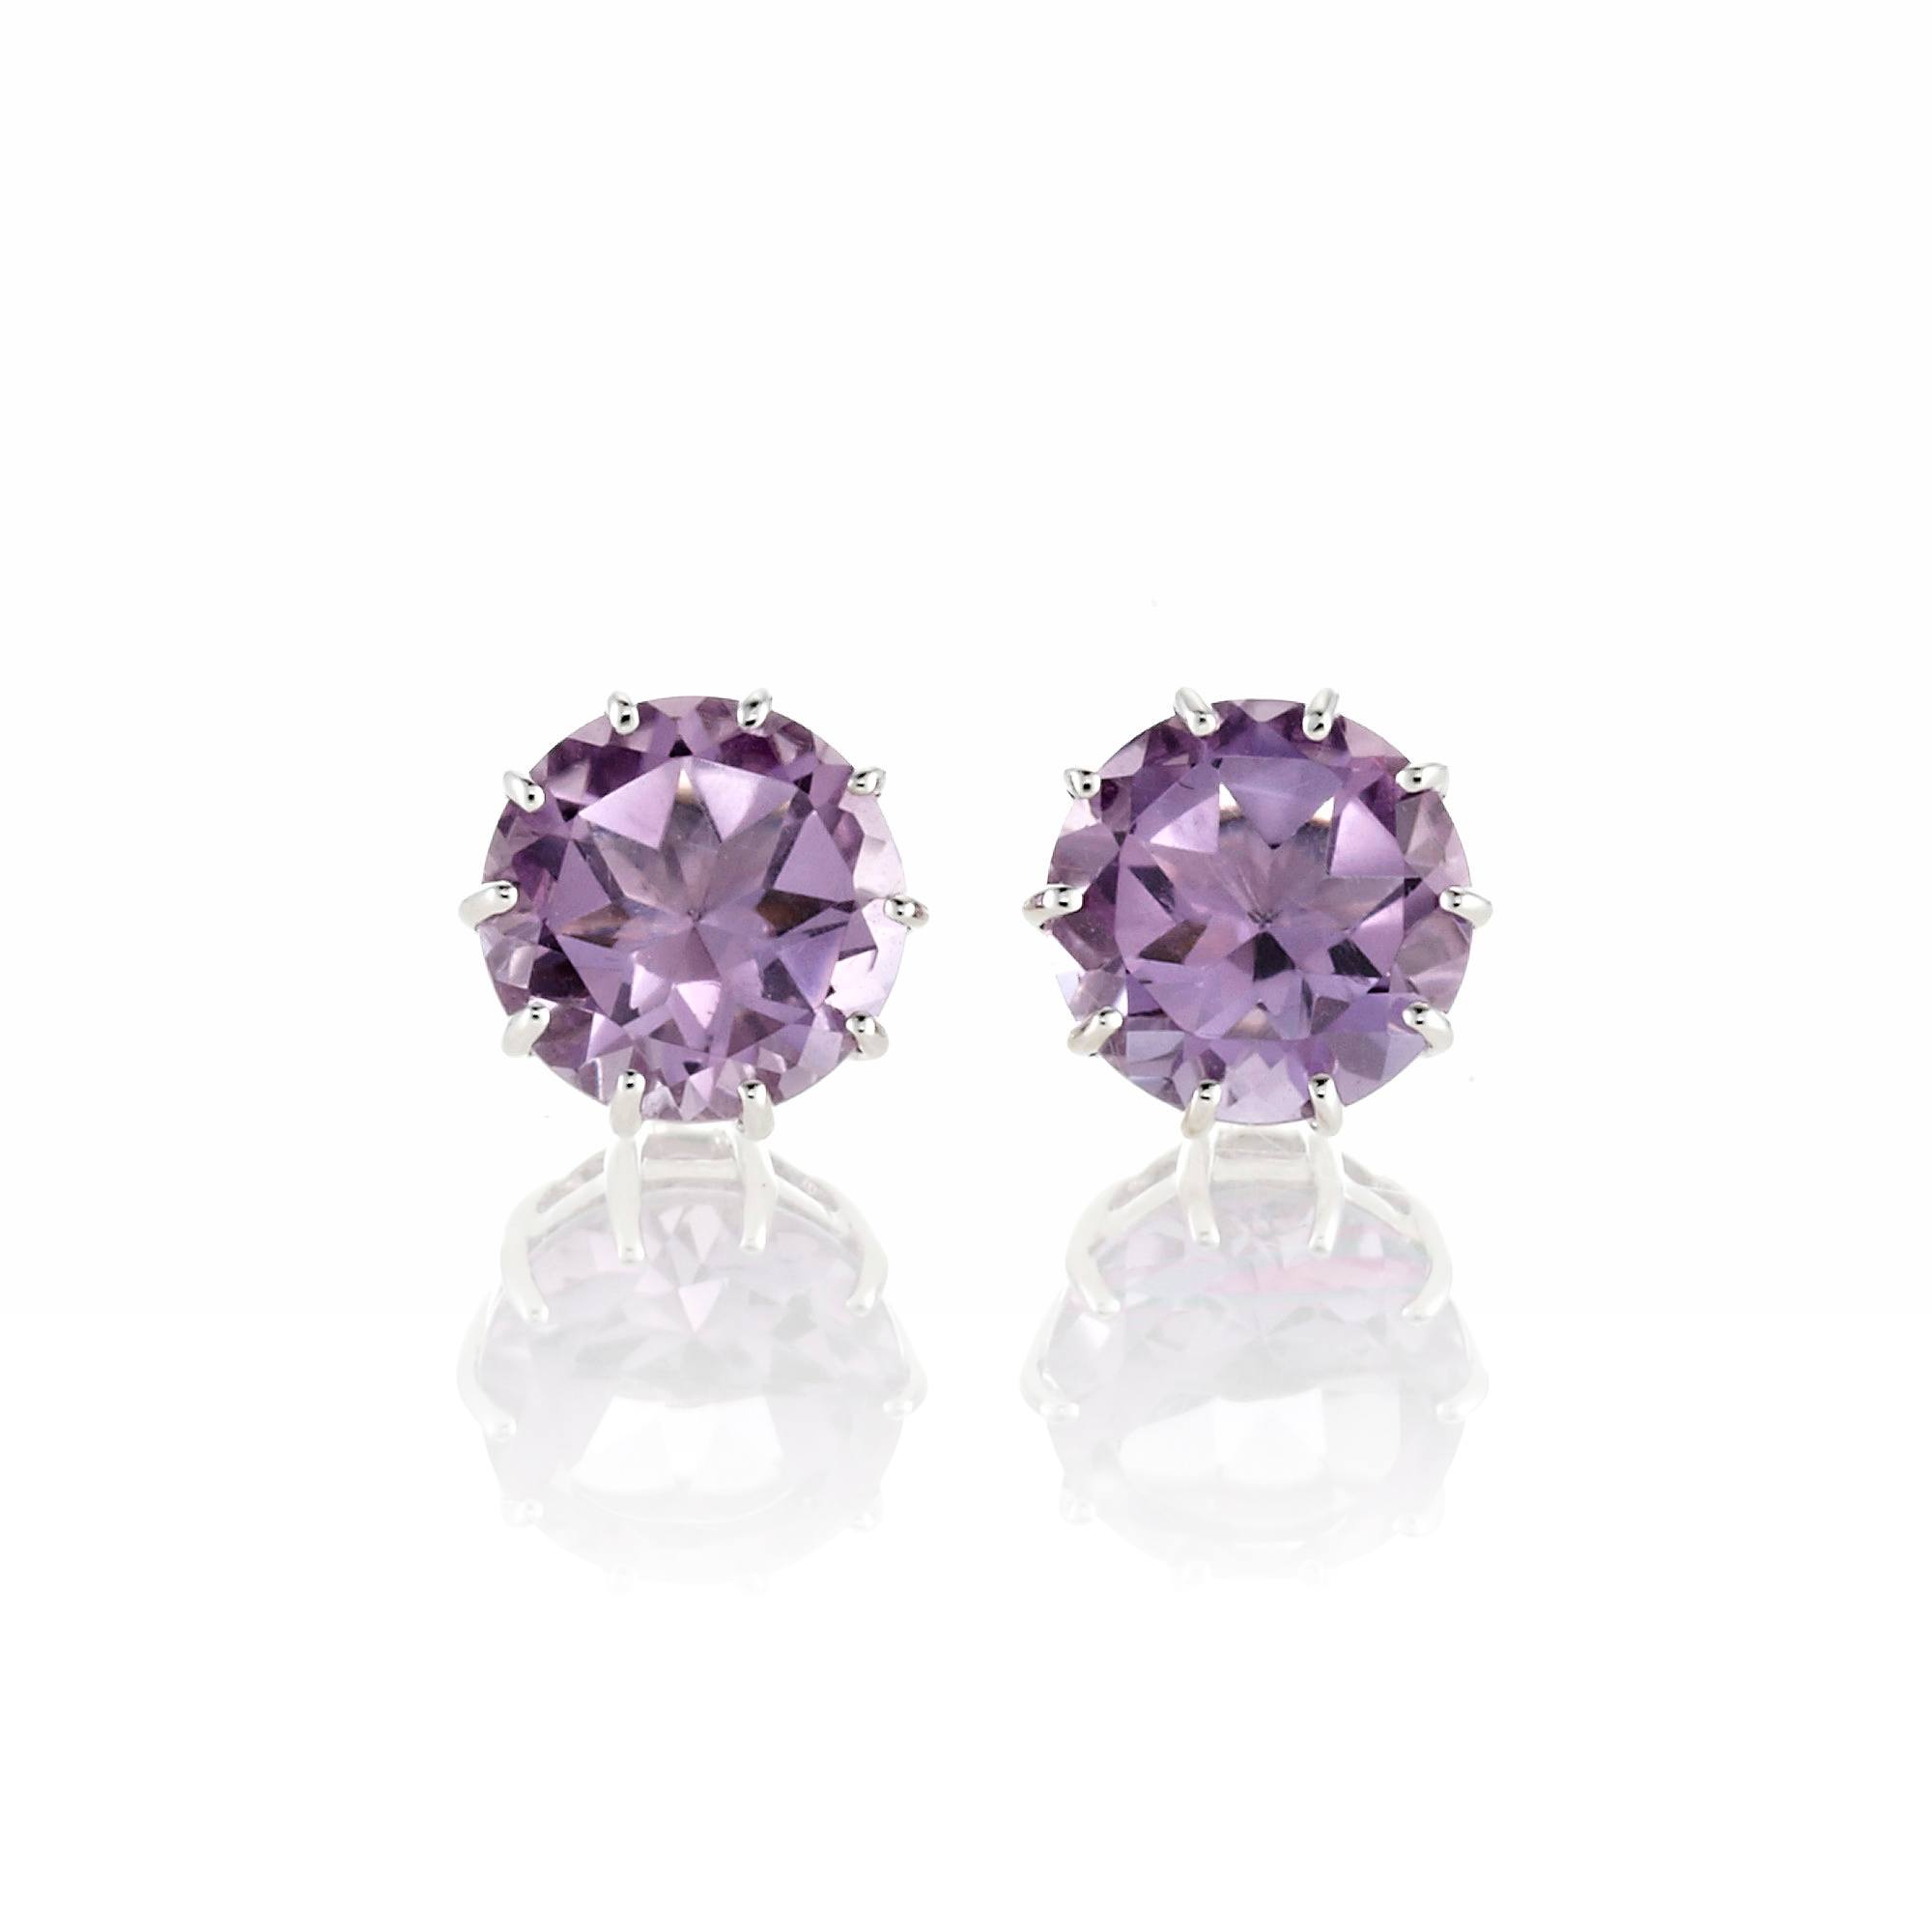 Gump's Amethyst Round Stud Earrings